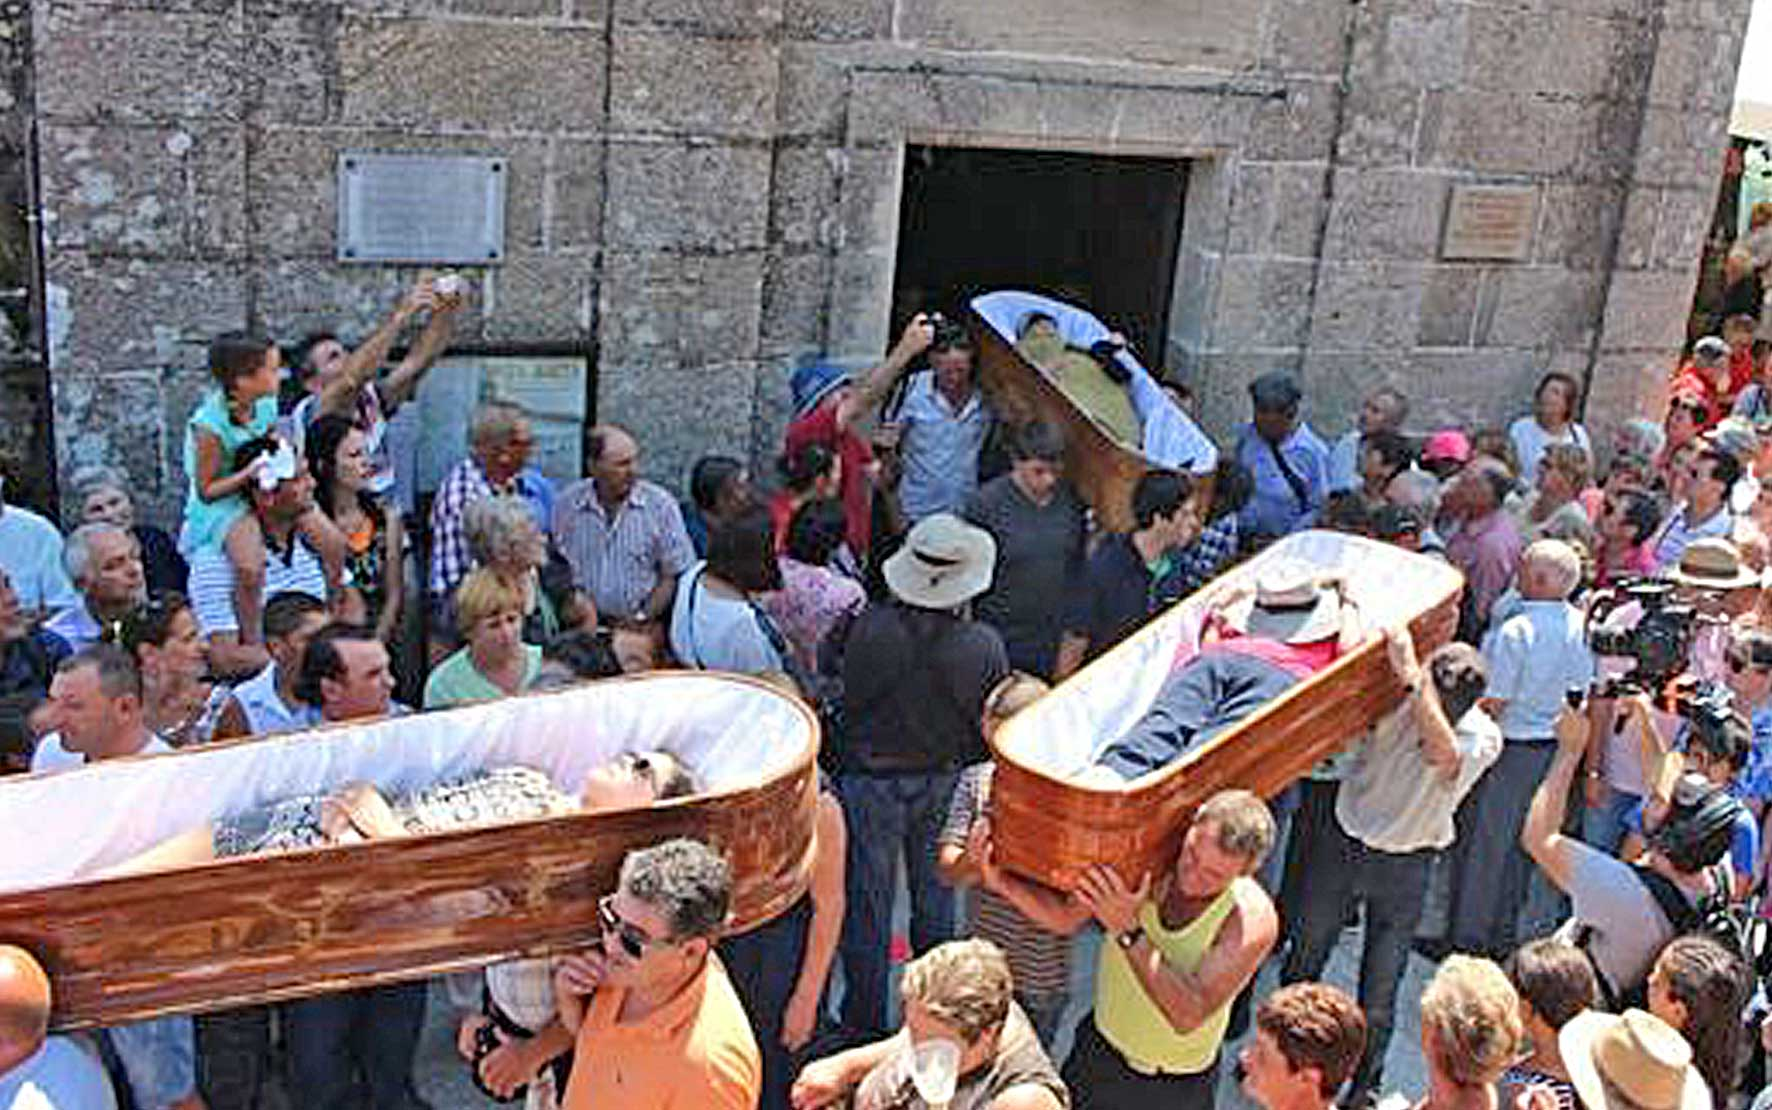 Festival of near death experiences marches through town with people in coffins